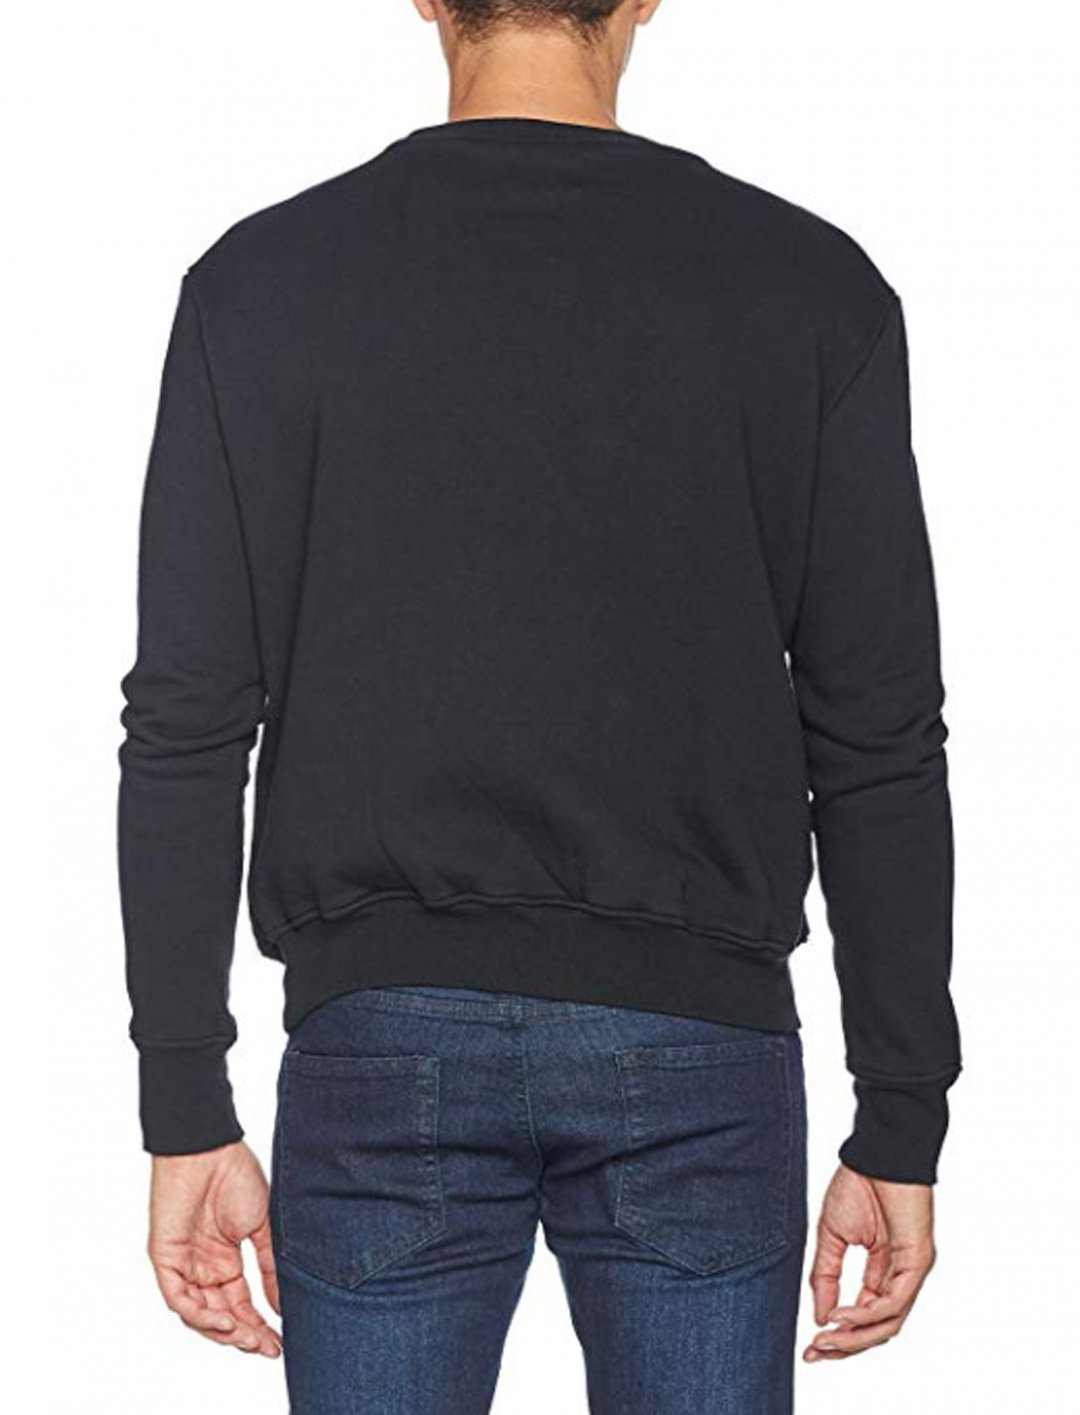 "True Religion Surf Skull Sweatshirt {""id"":5,""product_section_id"":1,""name"":""Clothing"",""order"":5} True Religion"